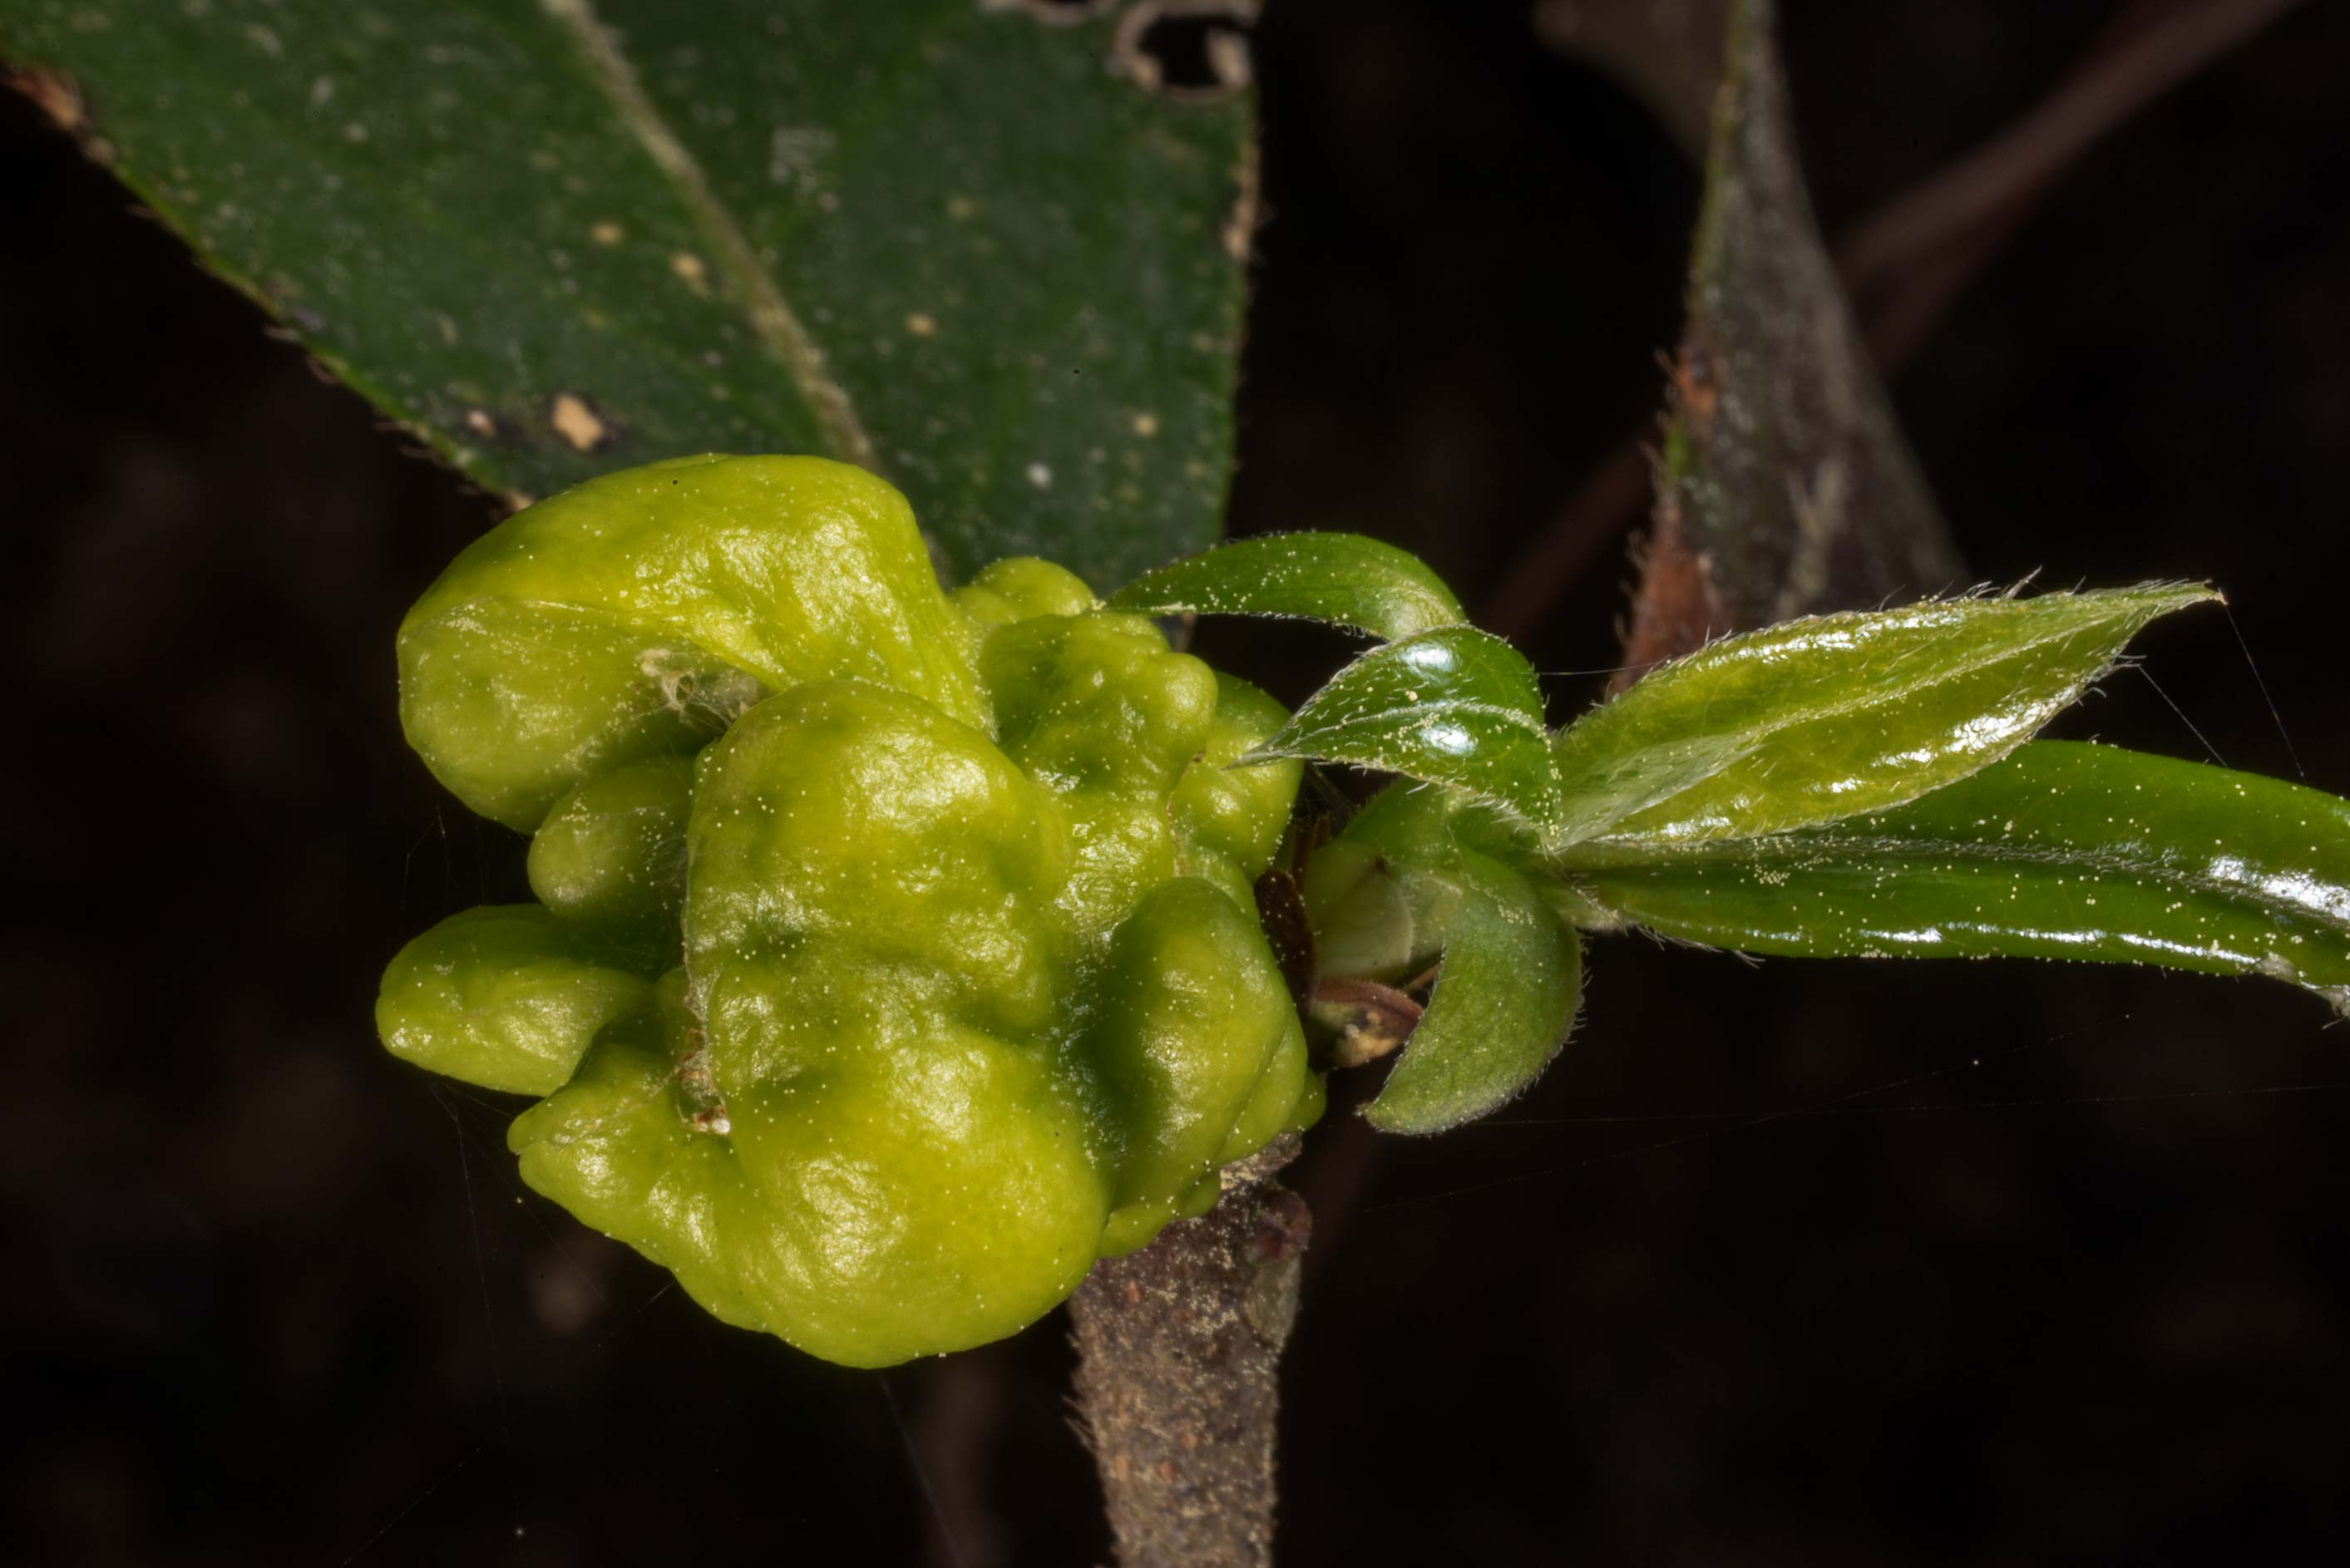 Gall caused by the fungus Exobasidium symploci...National Forest. Shepherd, Texas